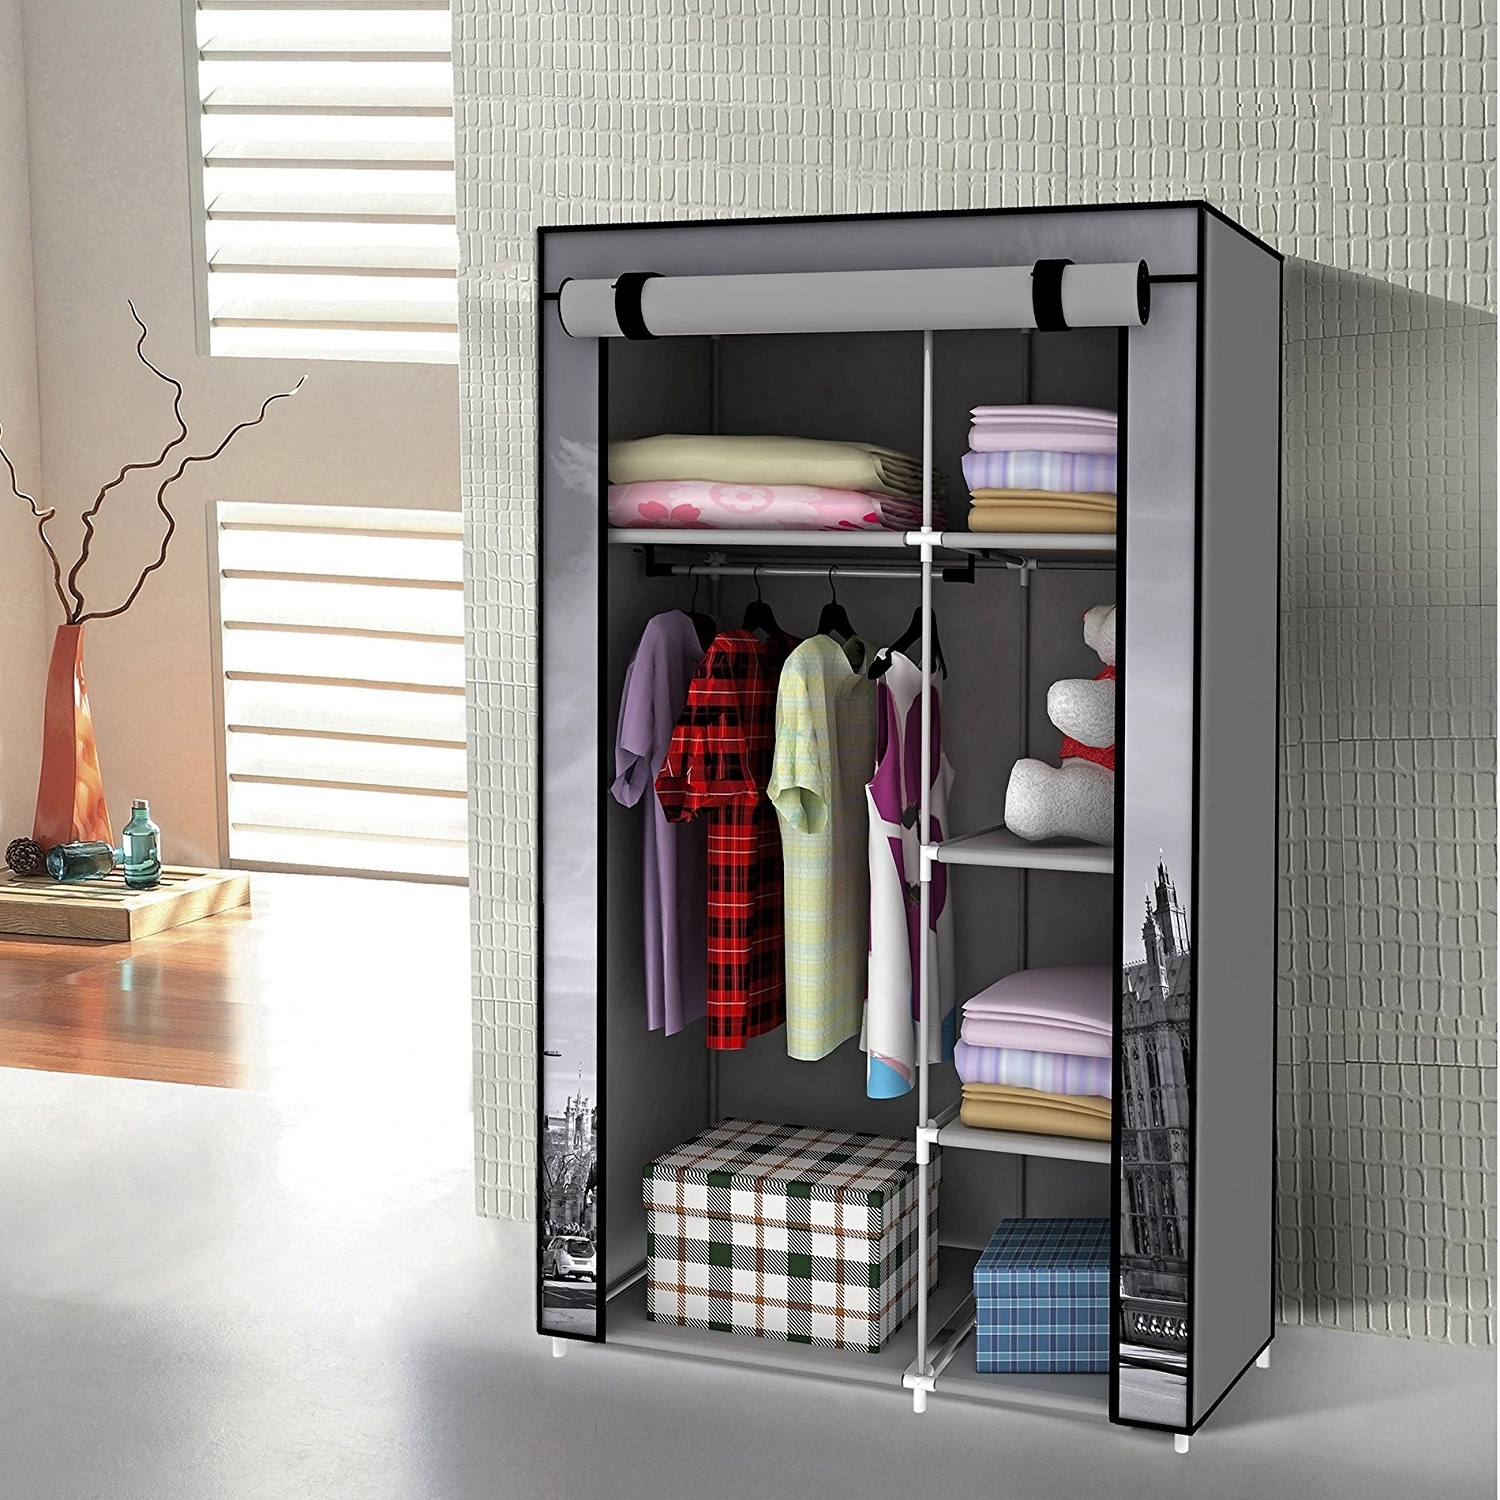 Trendy Furniture : Wooden Garment Rack Clothes Valet Heavy Duty Portable Throughout Double Canvas Wardrobes Rail Clothes Storage Cupboard (View 13 of 15)